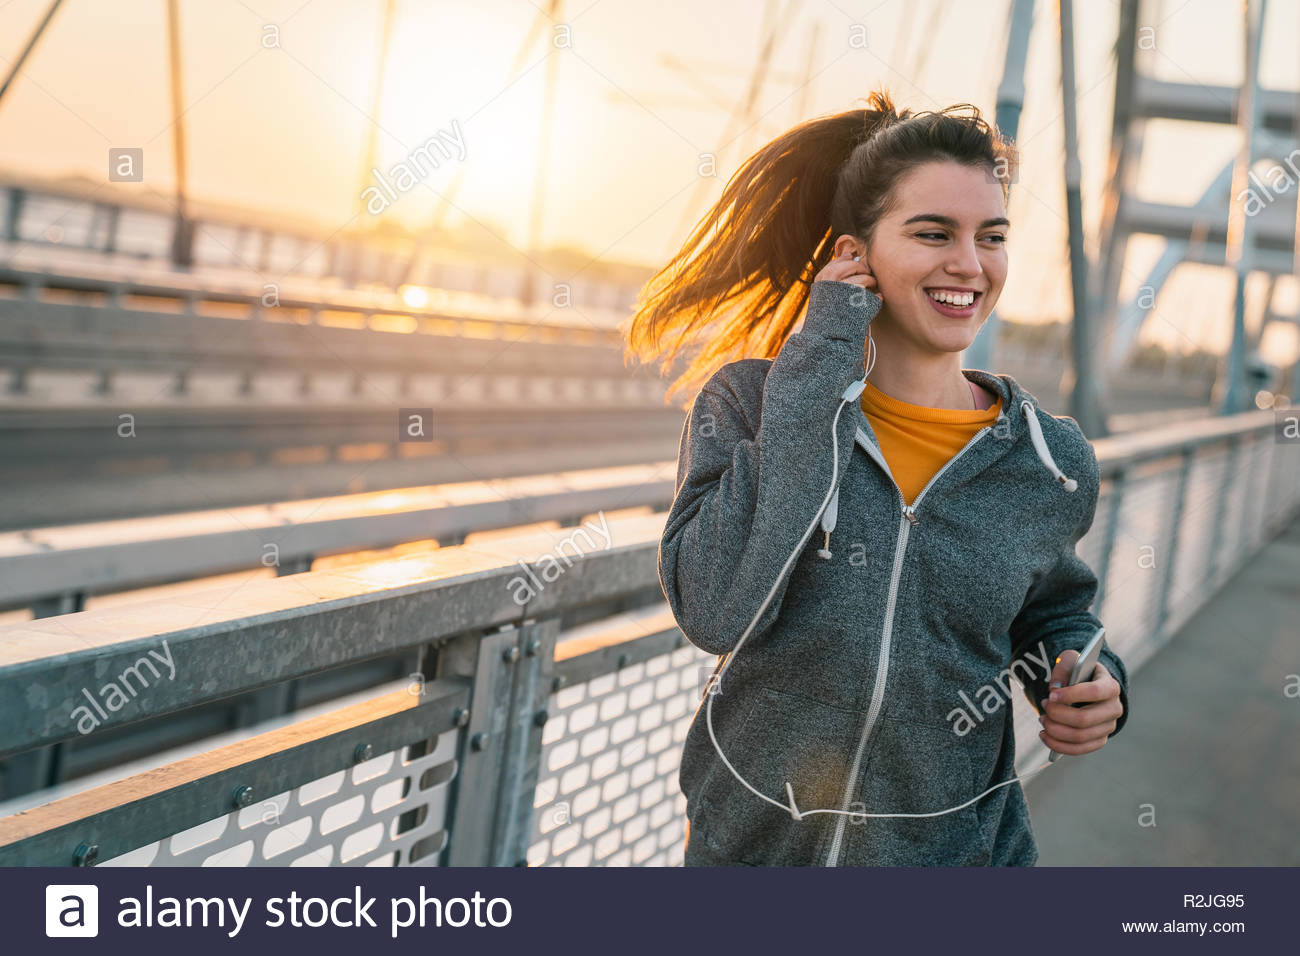 Happy sportswoman listening to music on earphones while jogging on a bridge at sunrise. - Stock Image